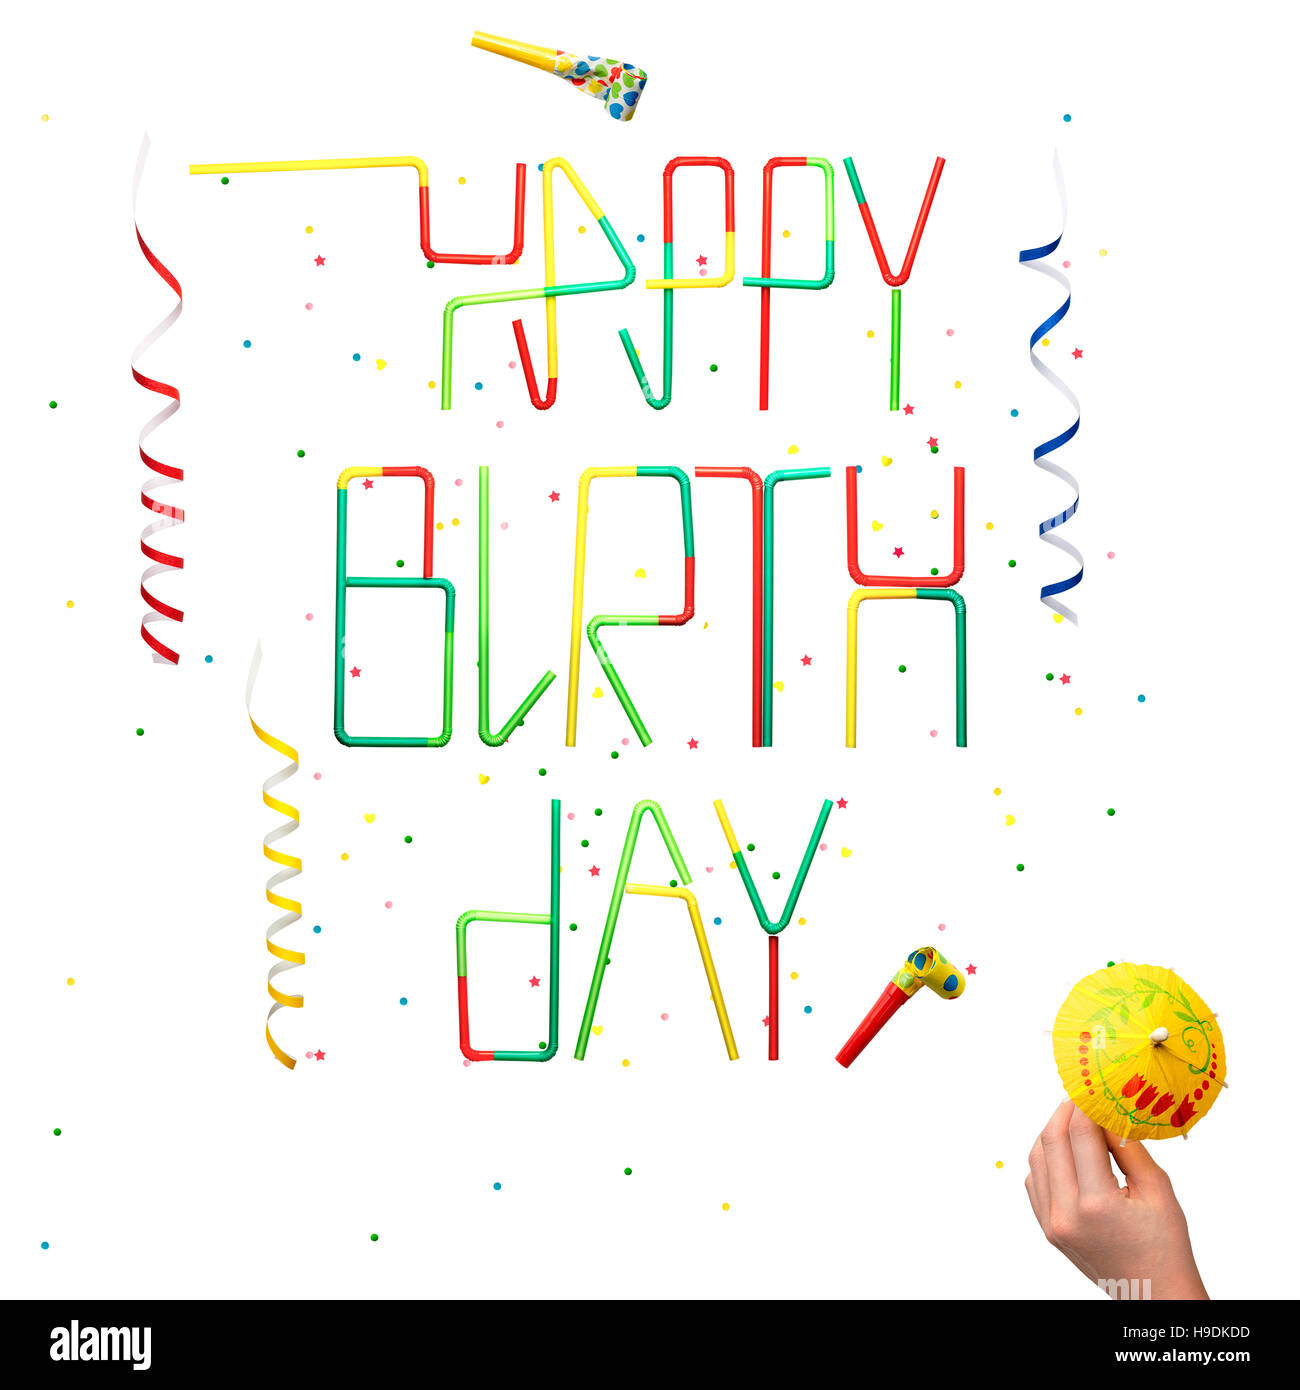 happy birthday banner cut out stock images pictures alamy